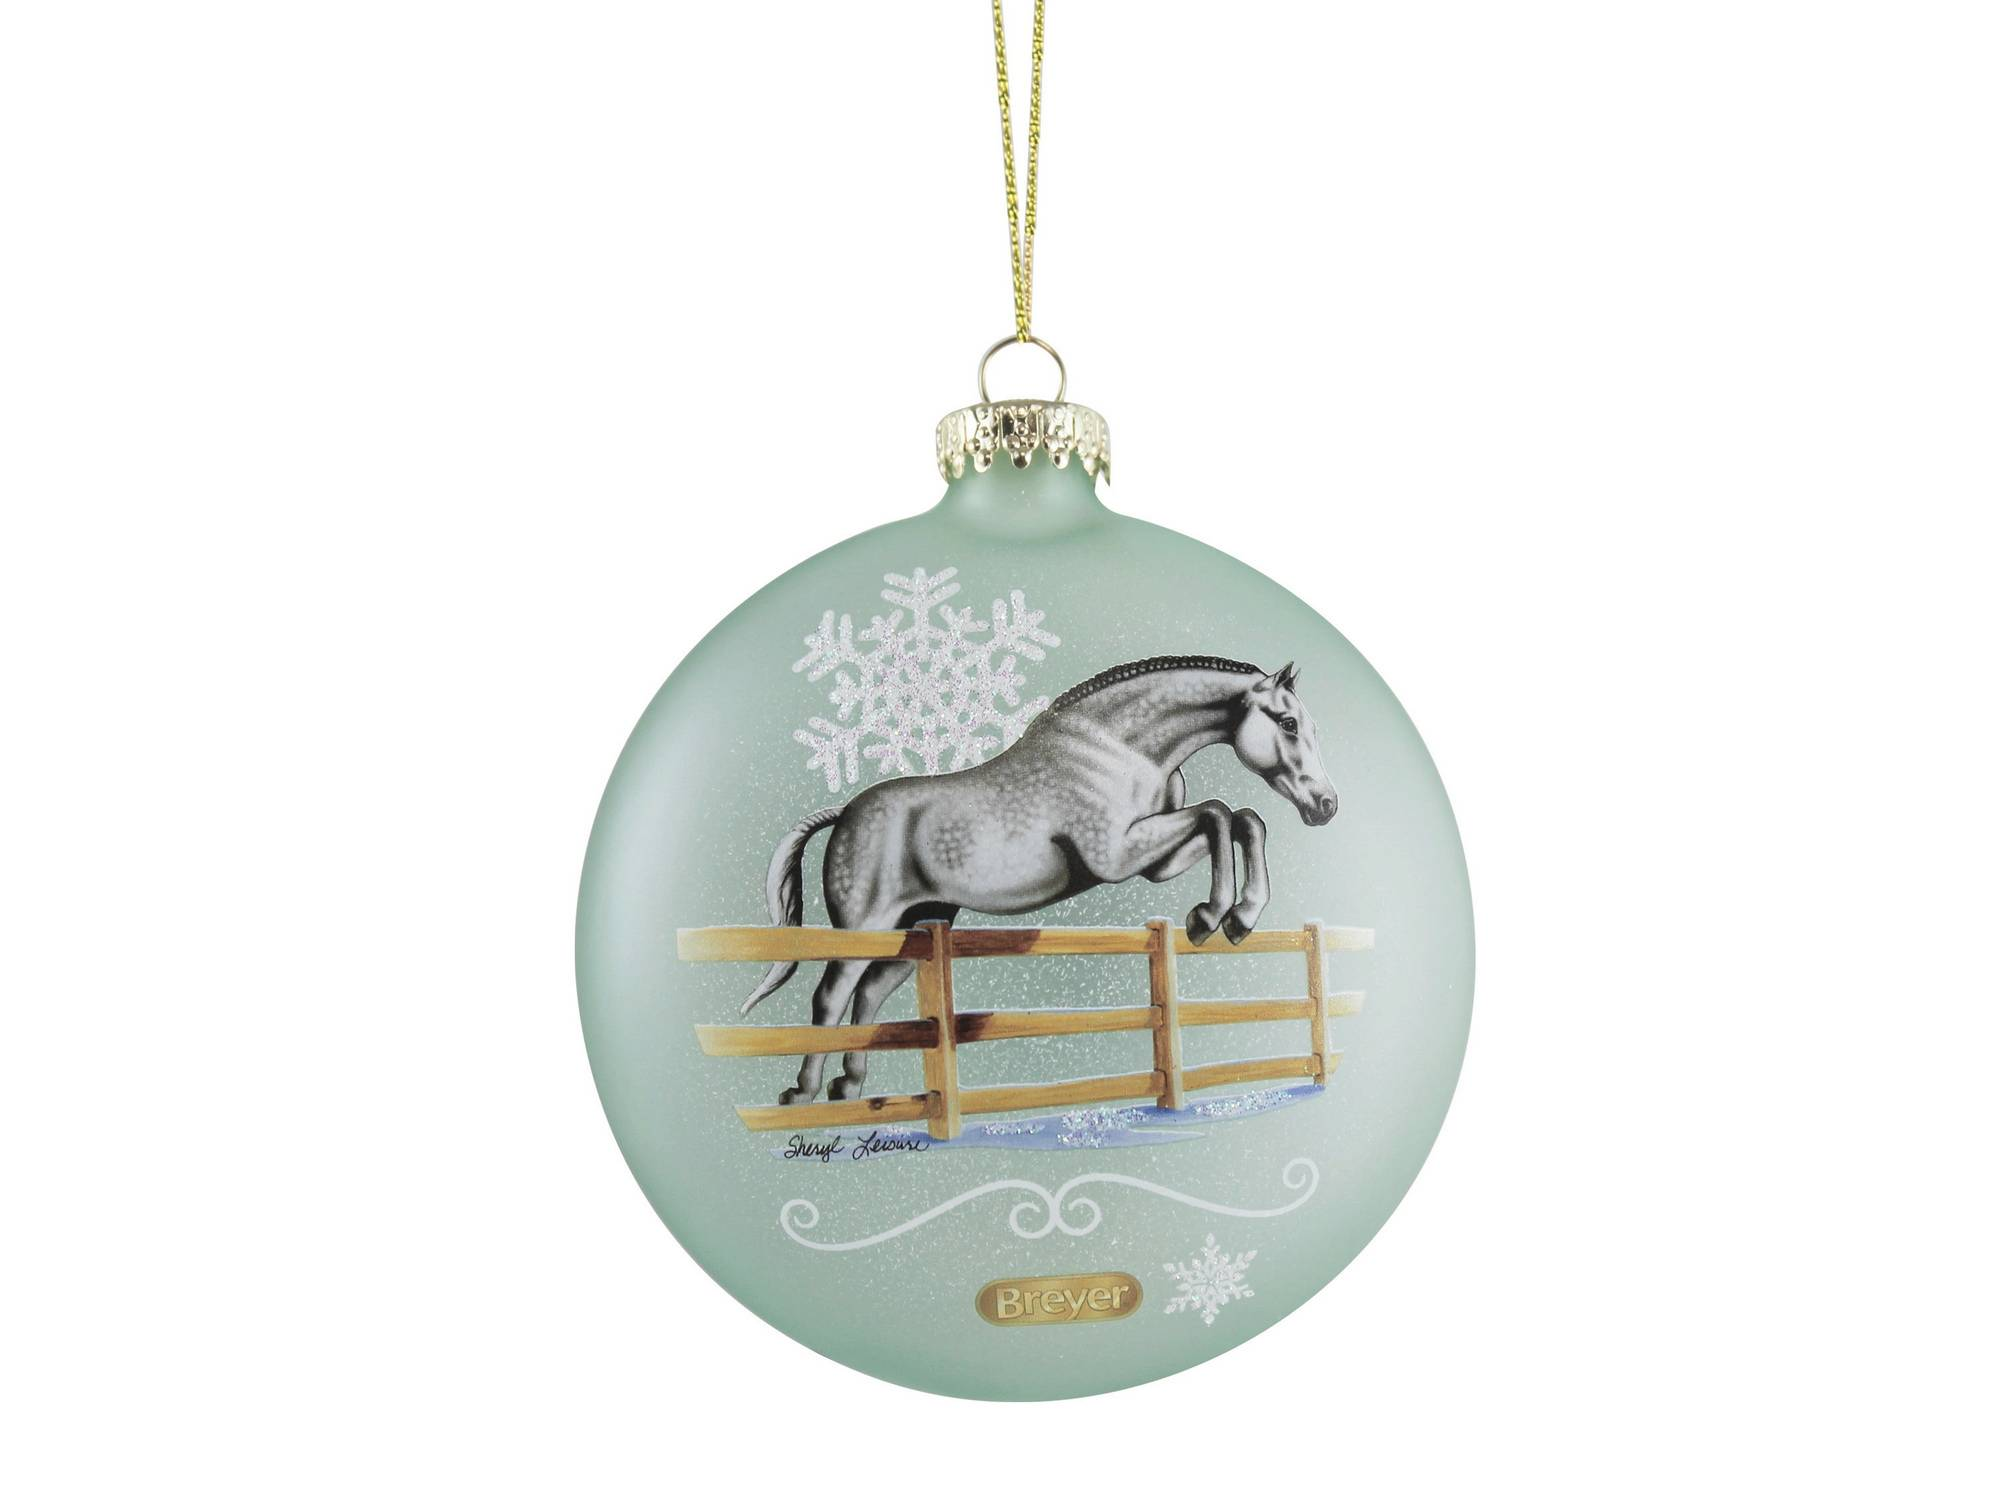 Breyer 2016 Artist Signature Ornament - Ponies